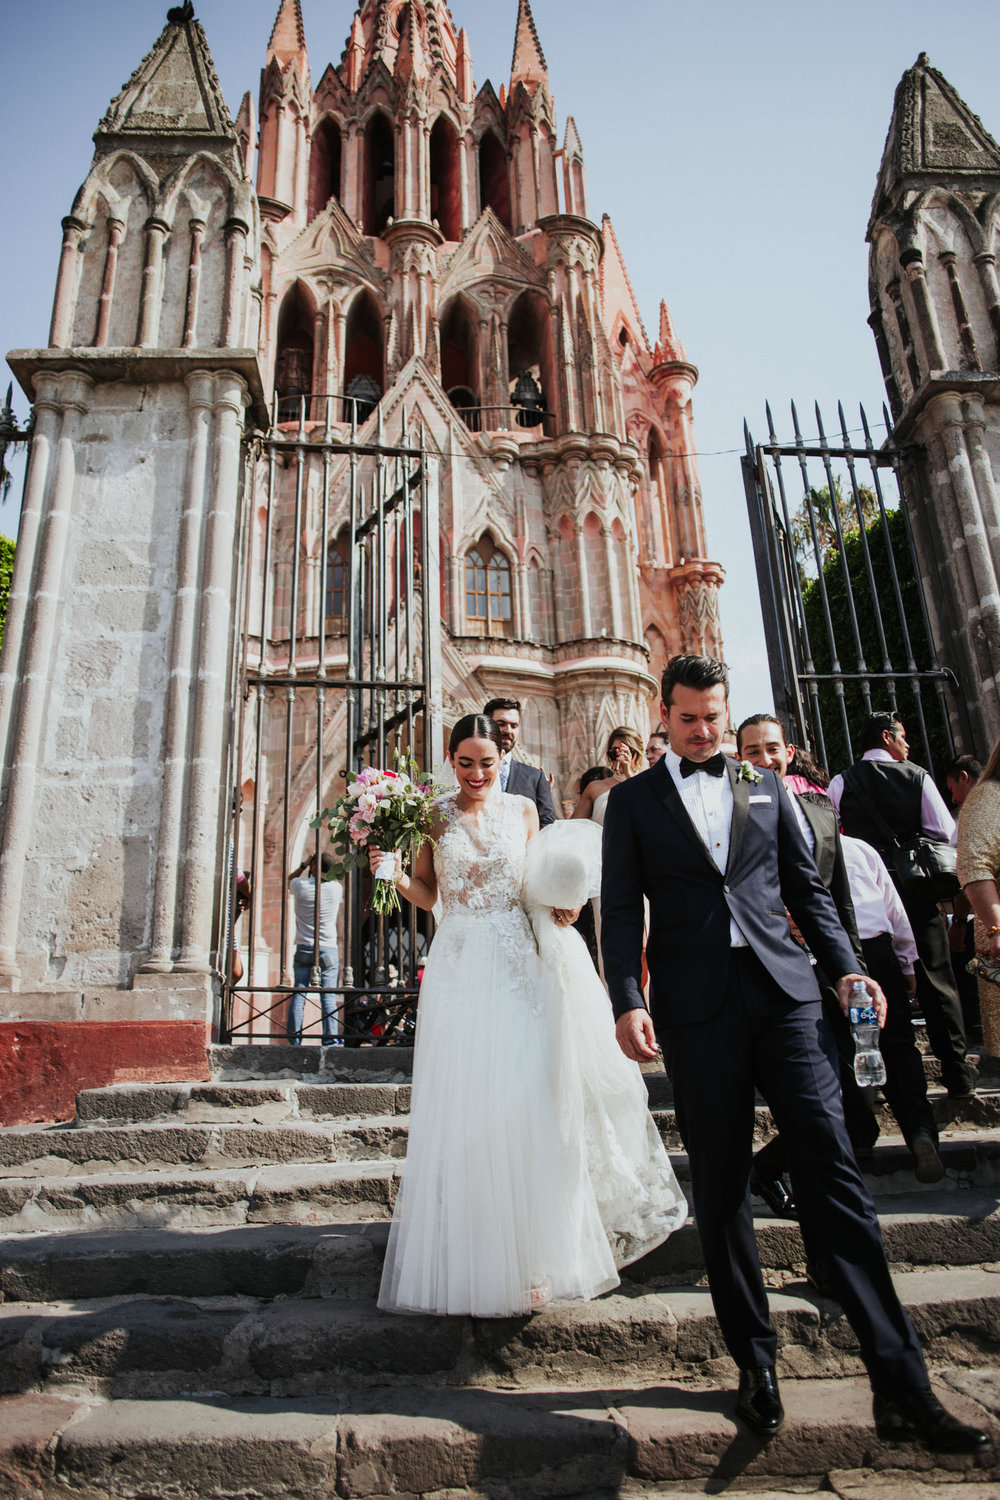 San-Miguel-de-Allende-Wedding-Photography-Parroquia-Instituto-Boda-Fotografia-Fer-Sergio-Pierce-Lifestyle-Photography0168.JPG